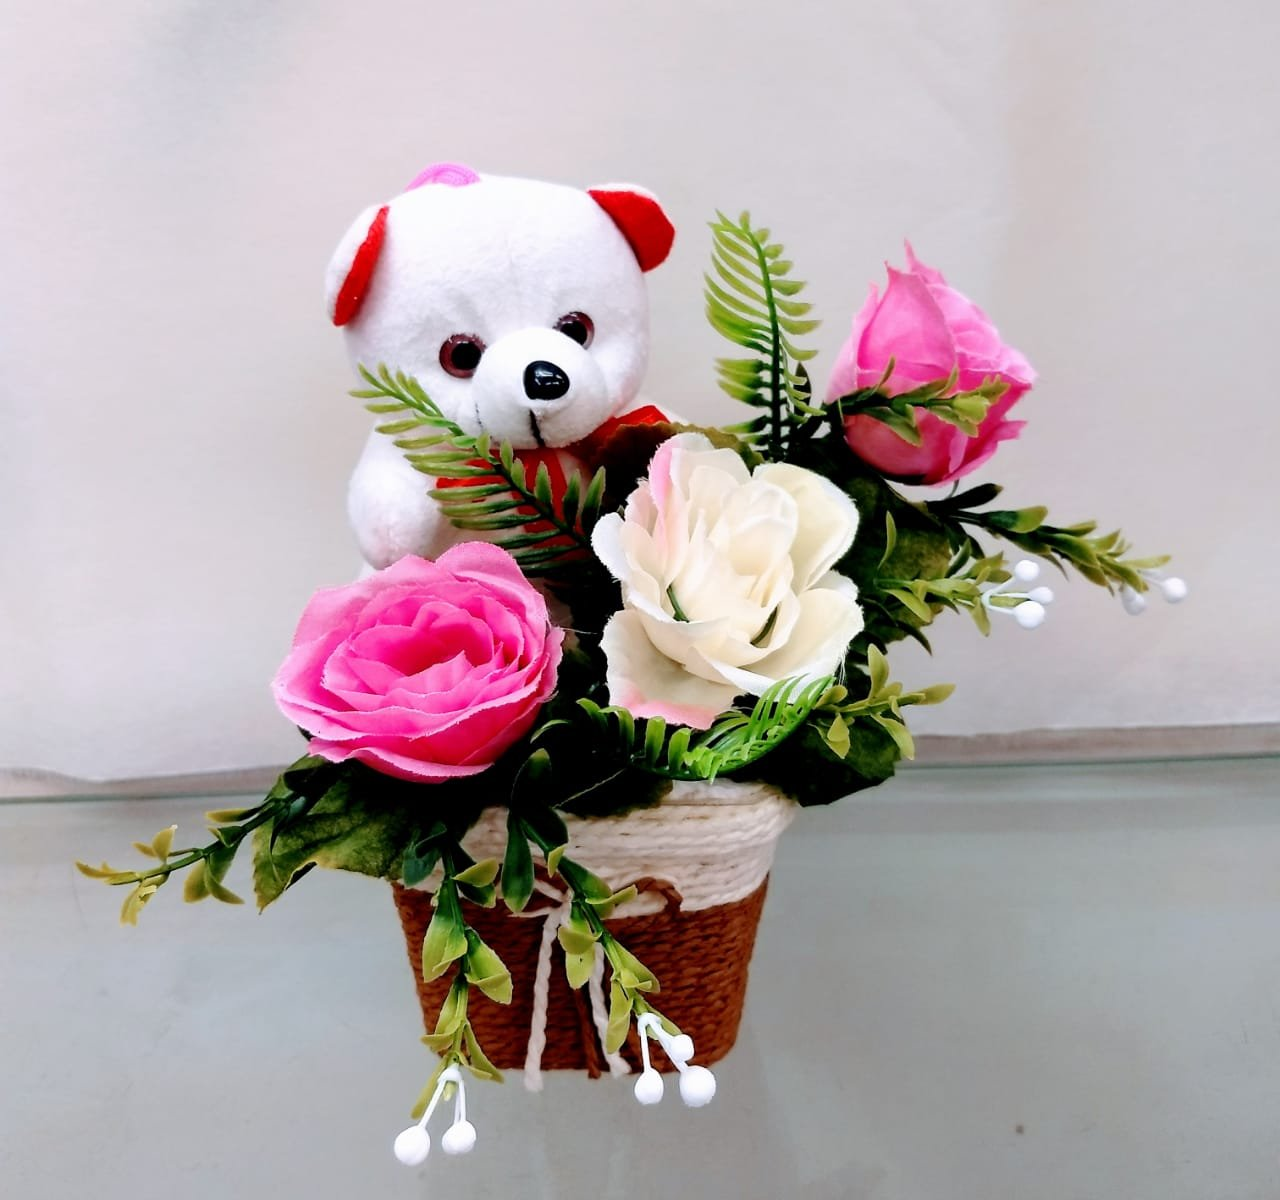 Just Flowers Cute Teddy with Roses Bouquet Small